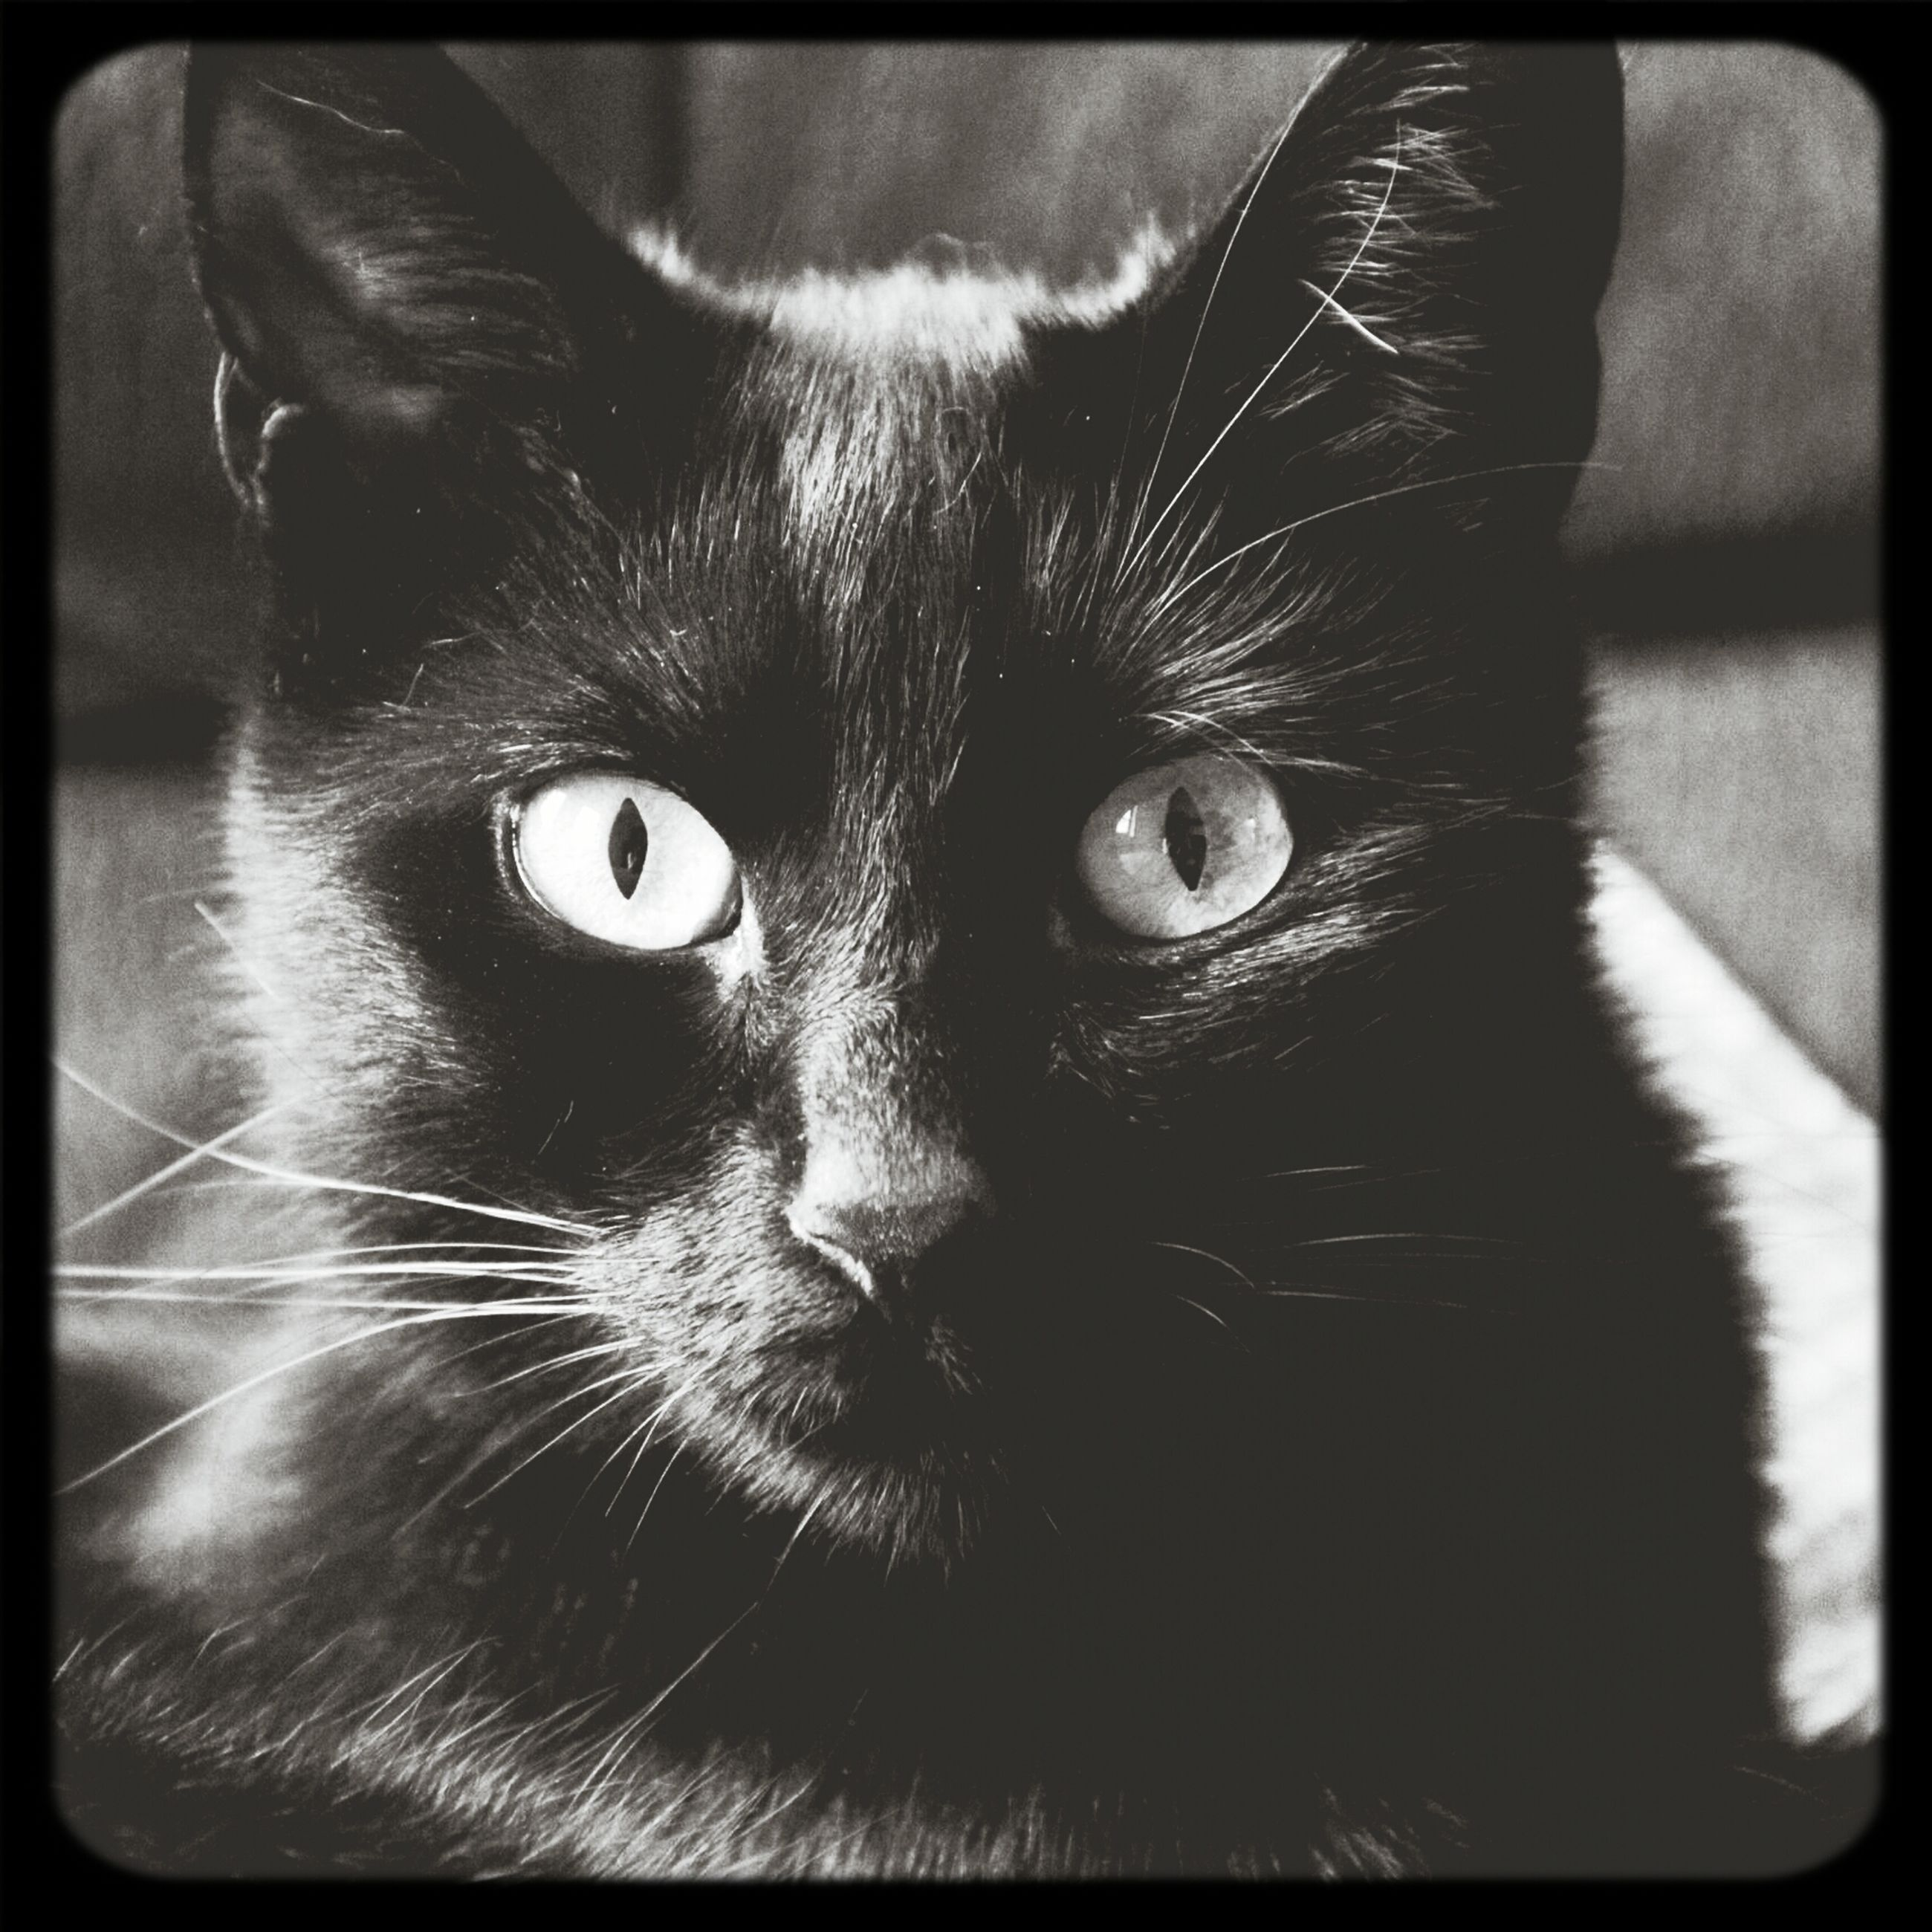 pets, one animal, animal themes, domestic cat, domestic animals, transfer print, cat, indoors, portrait, looking at camera, feline, mammal, whisker, close-up, auto post production filter, animal head, animal eye, staring, alertness, black color